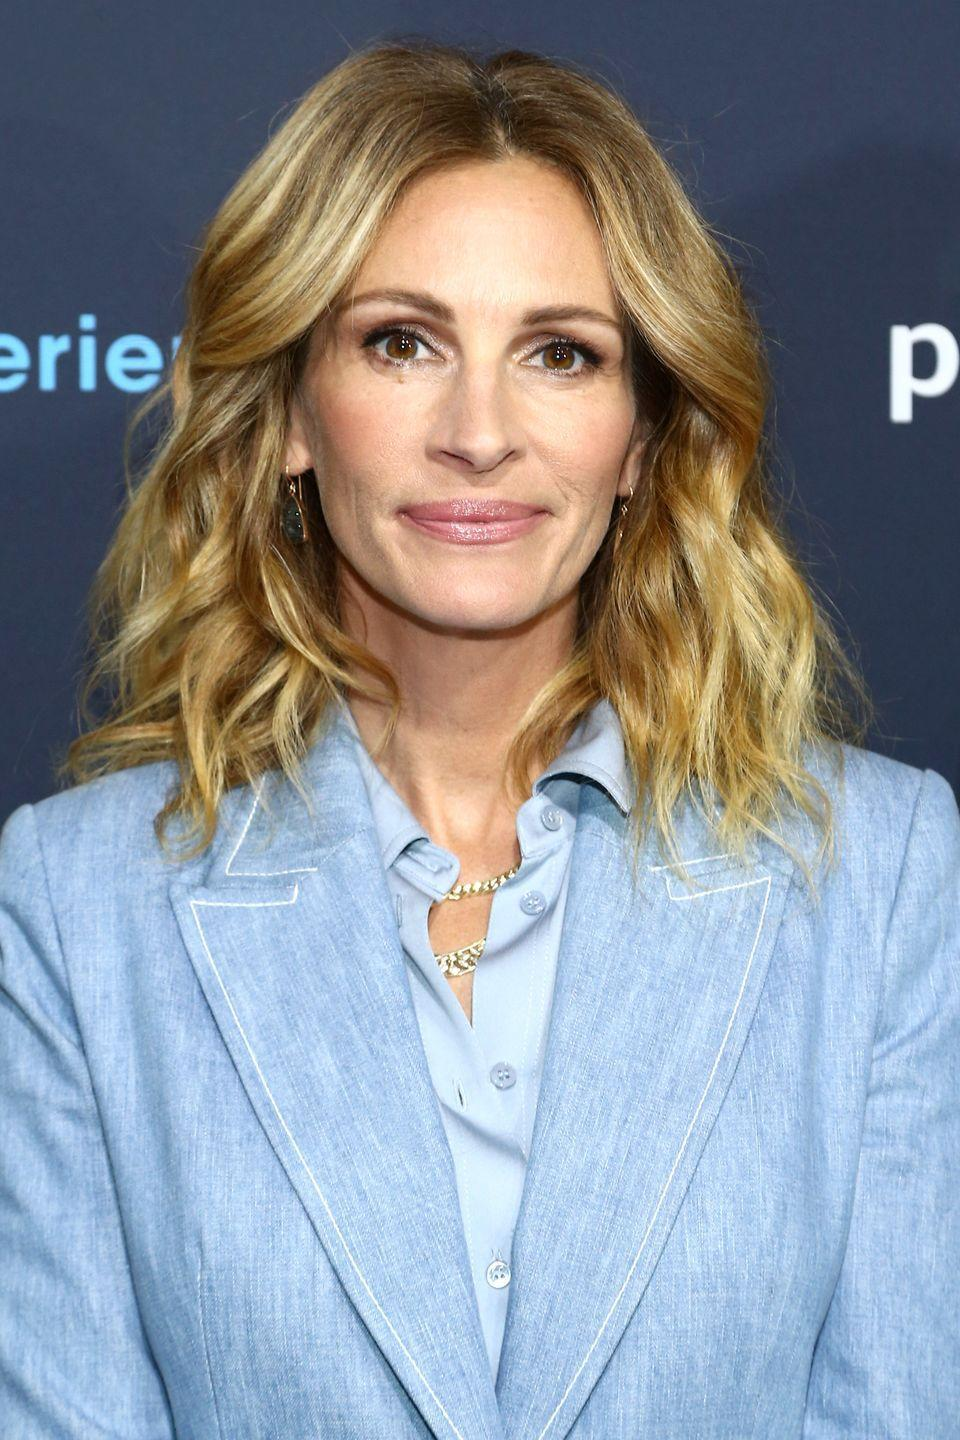 "<p>In addition to Barack Obama, Baskin-Robbins can also claim Julia Roberts as another one of its former now famous employees. According to <a href=""https://www.heraldweekly.com/he-did-what-actors-and-their-first-jobs/8/"" rel=""nofollow noopener"" target=""_blank"" data-ylk=""slk:Herald Weekly"" class=""link rapid-noclick-resp""><em>Herald Weekly</em></a>, her shifts scooping ice cream helped Julia pay for her acting classes. </p>"